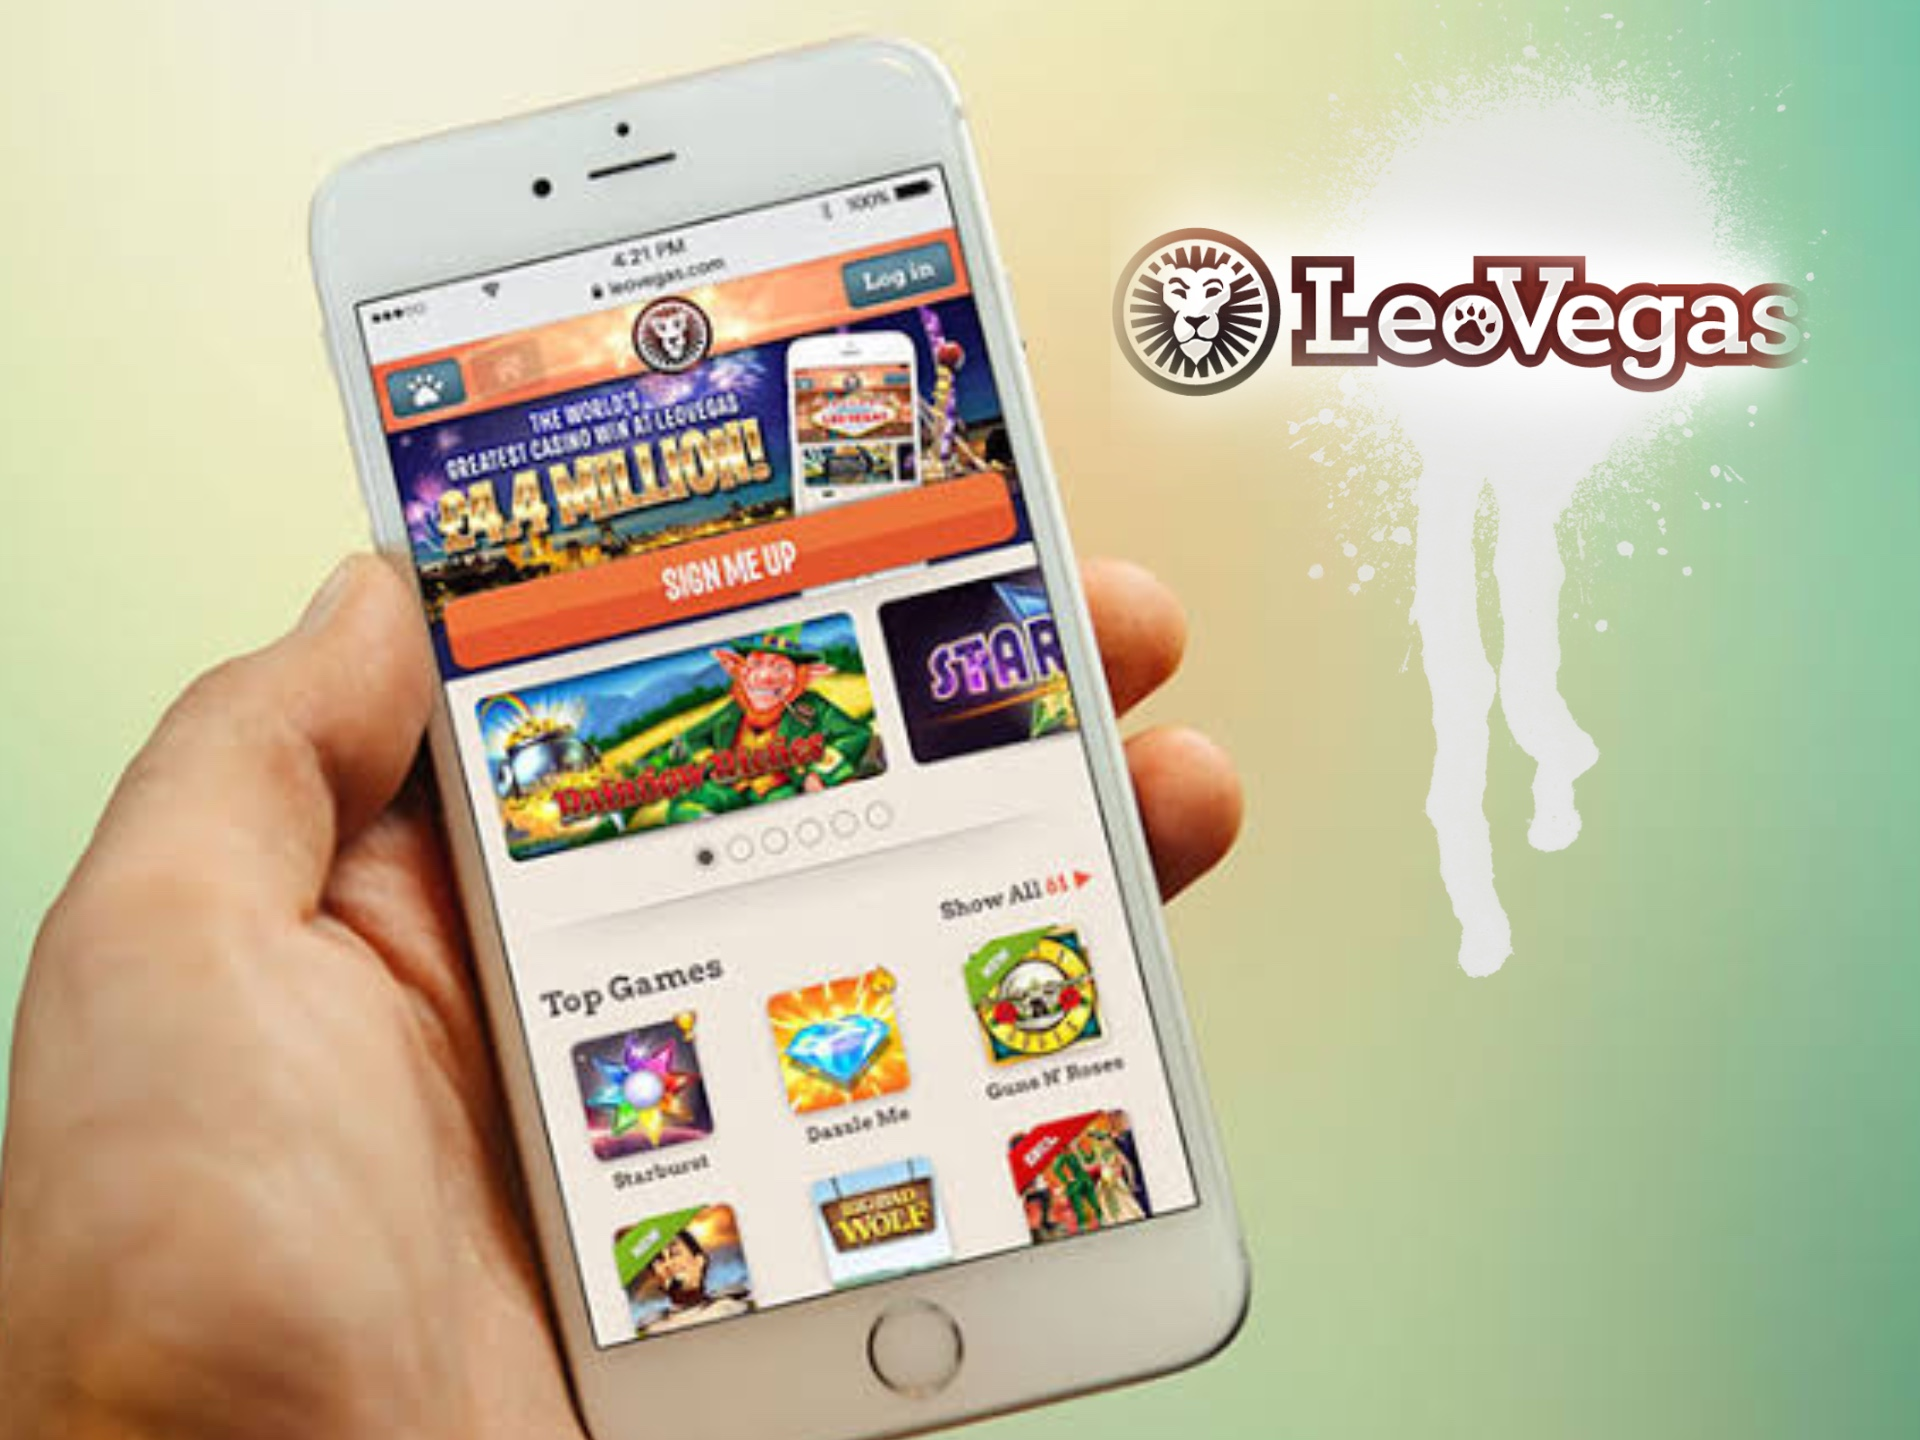 Betting is much more convenient with the LeoVegas mobile app.